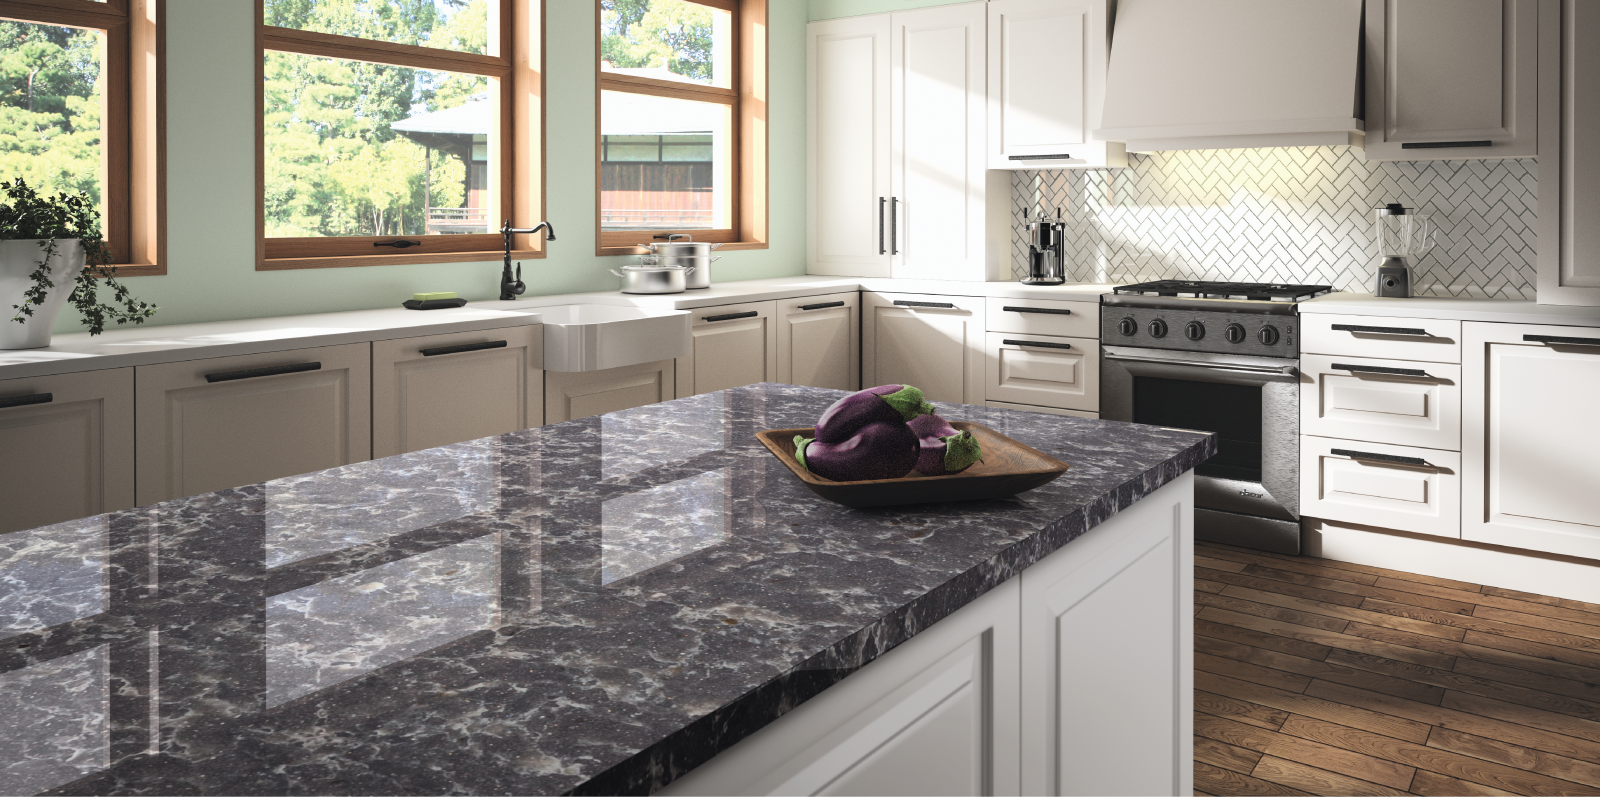 Designer collection 2017 quartz coarian granite ceasarstone countertops for kitchen or bathroom - Designer kitchen and bathroom ...